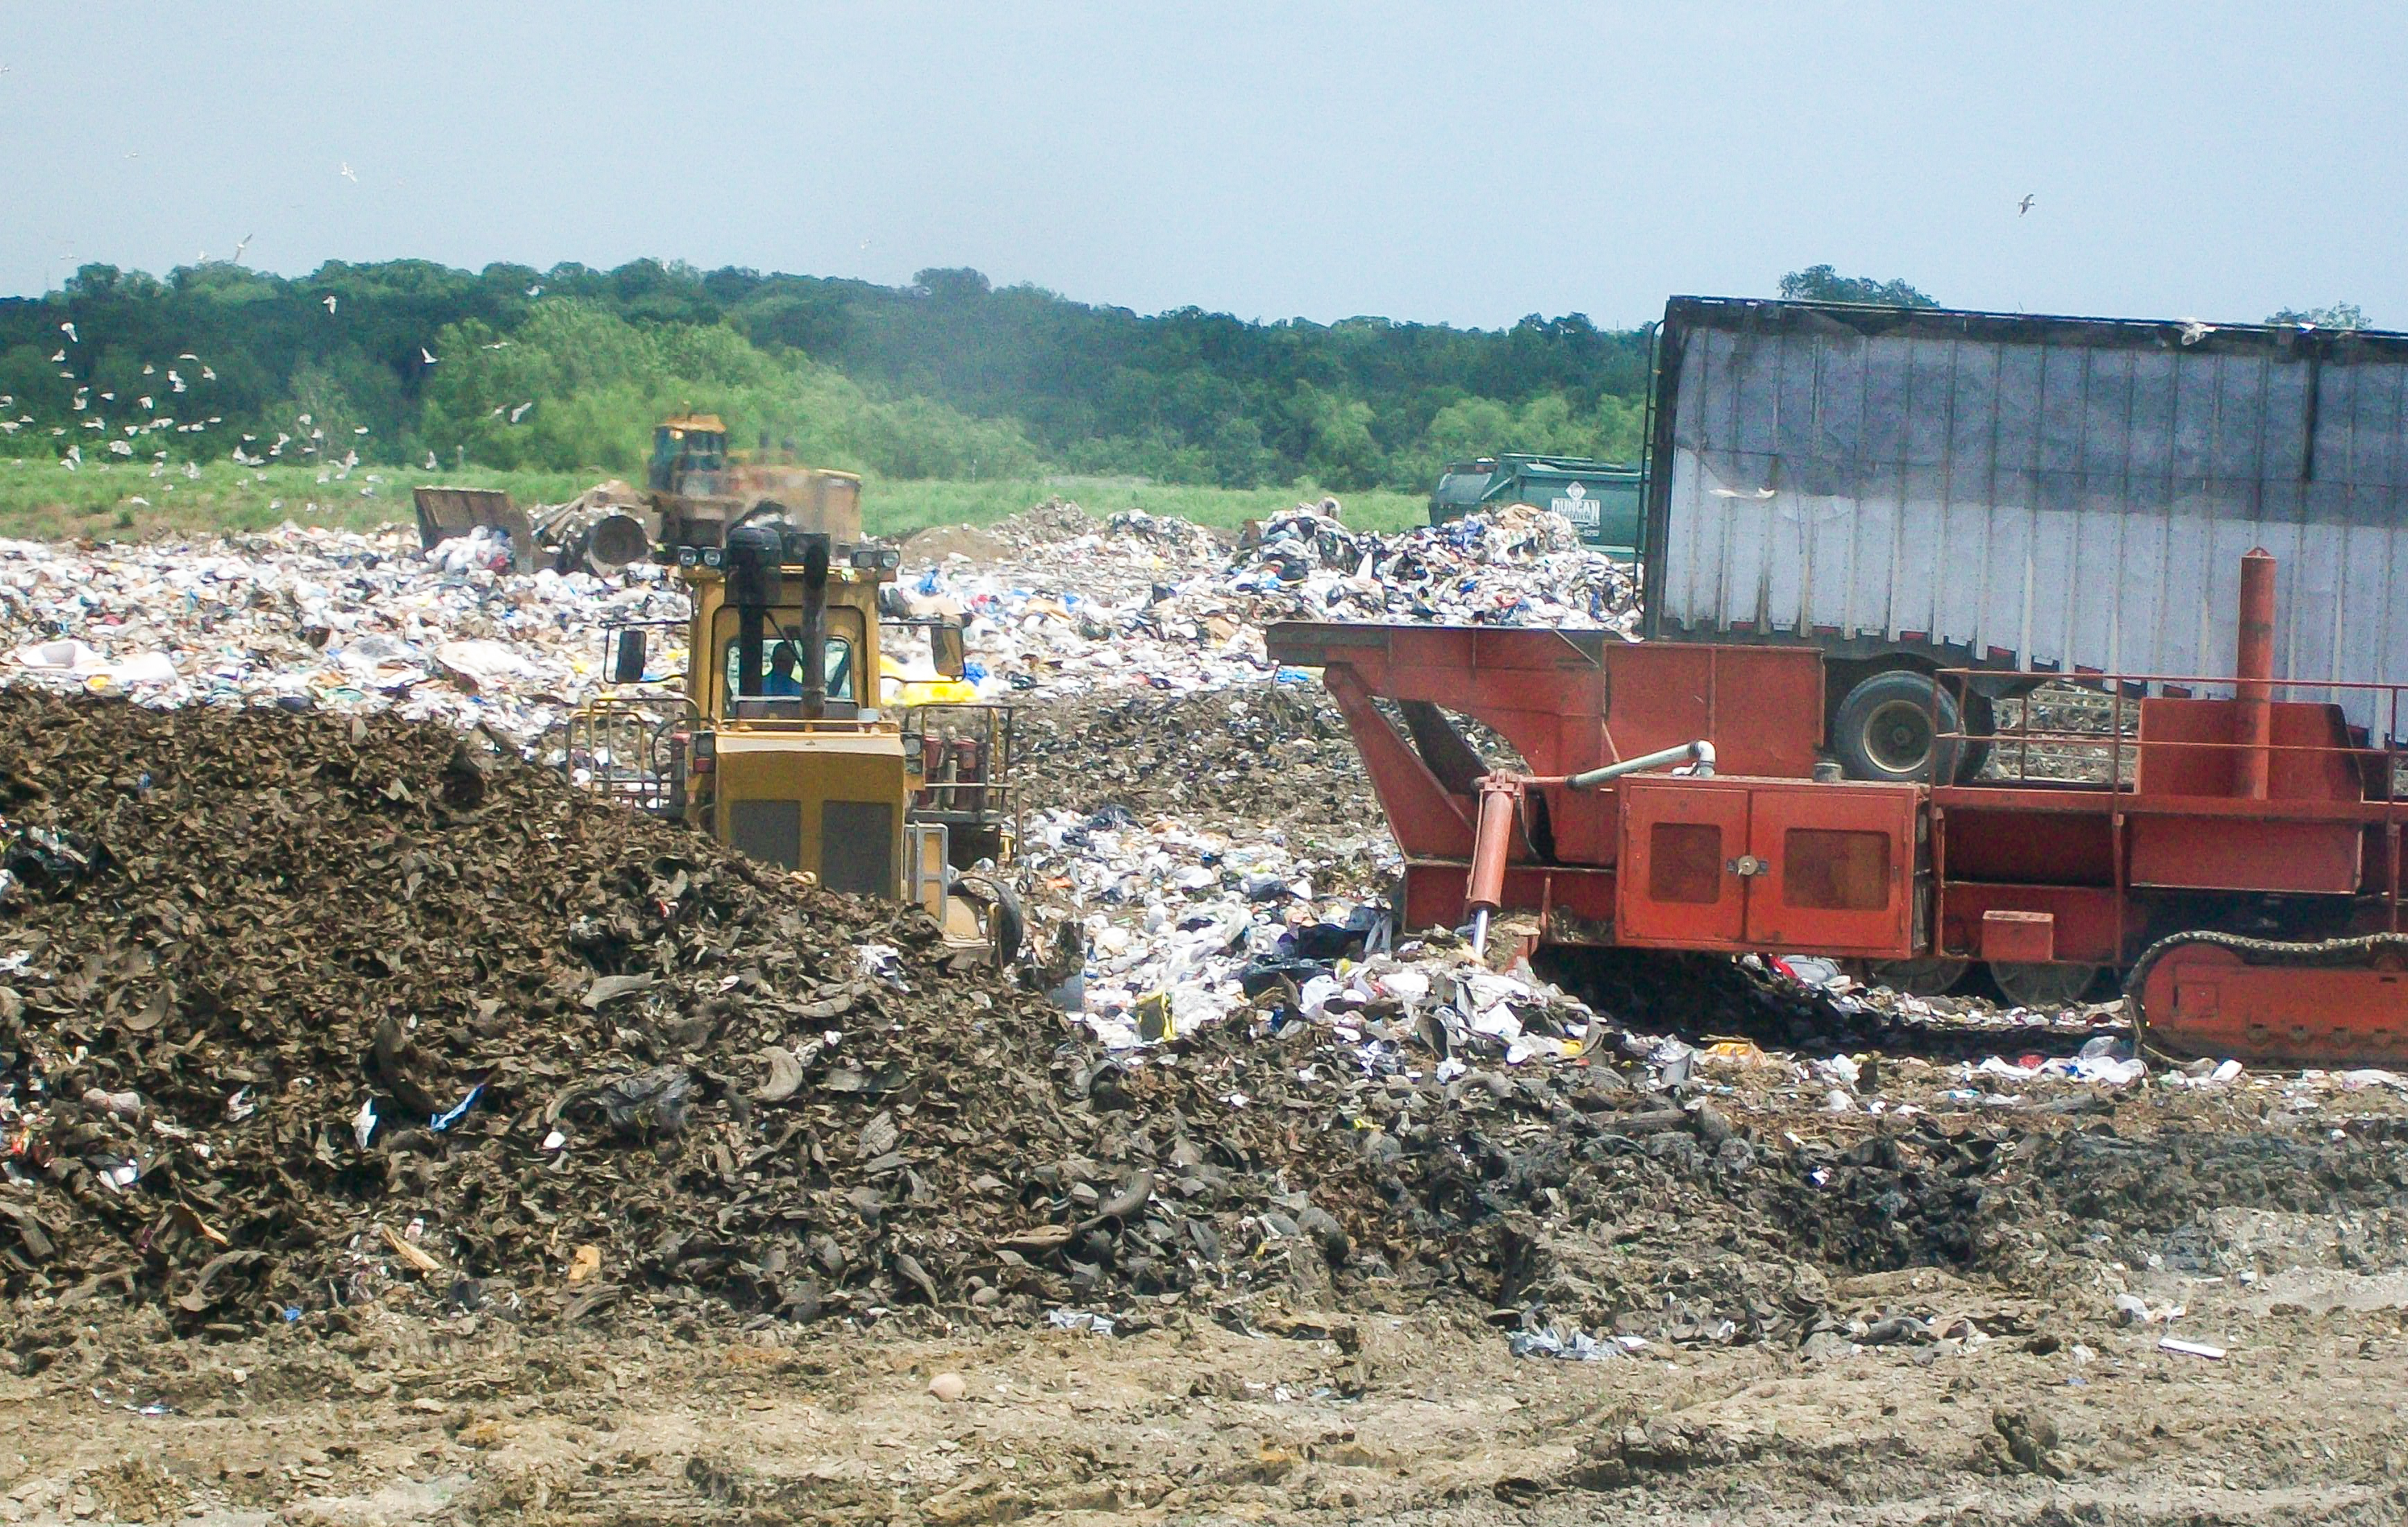 City of Dallas McCommas Bluff Landfill, Go Zero waste this winter, reduce waste